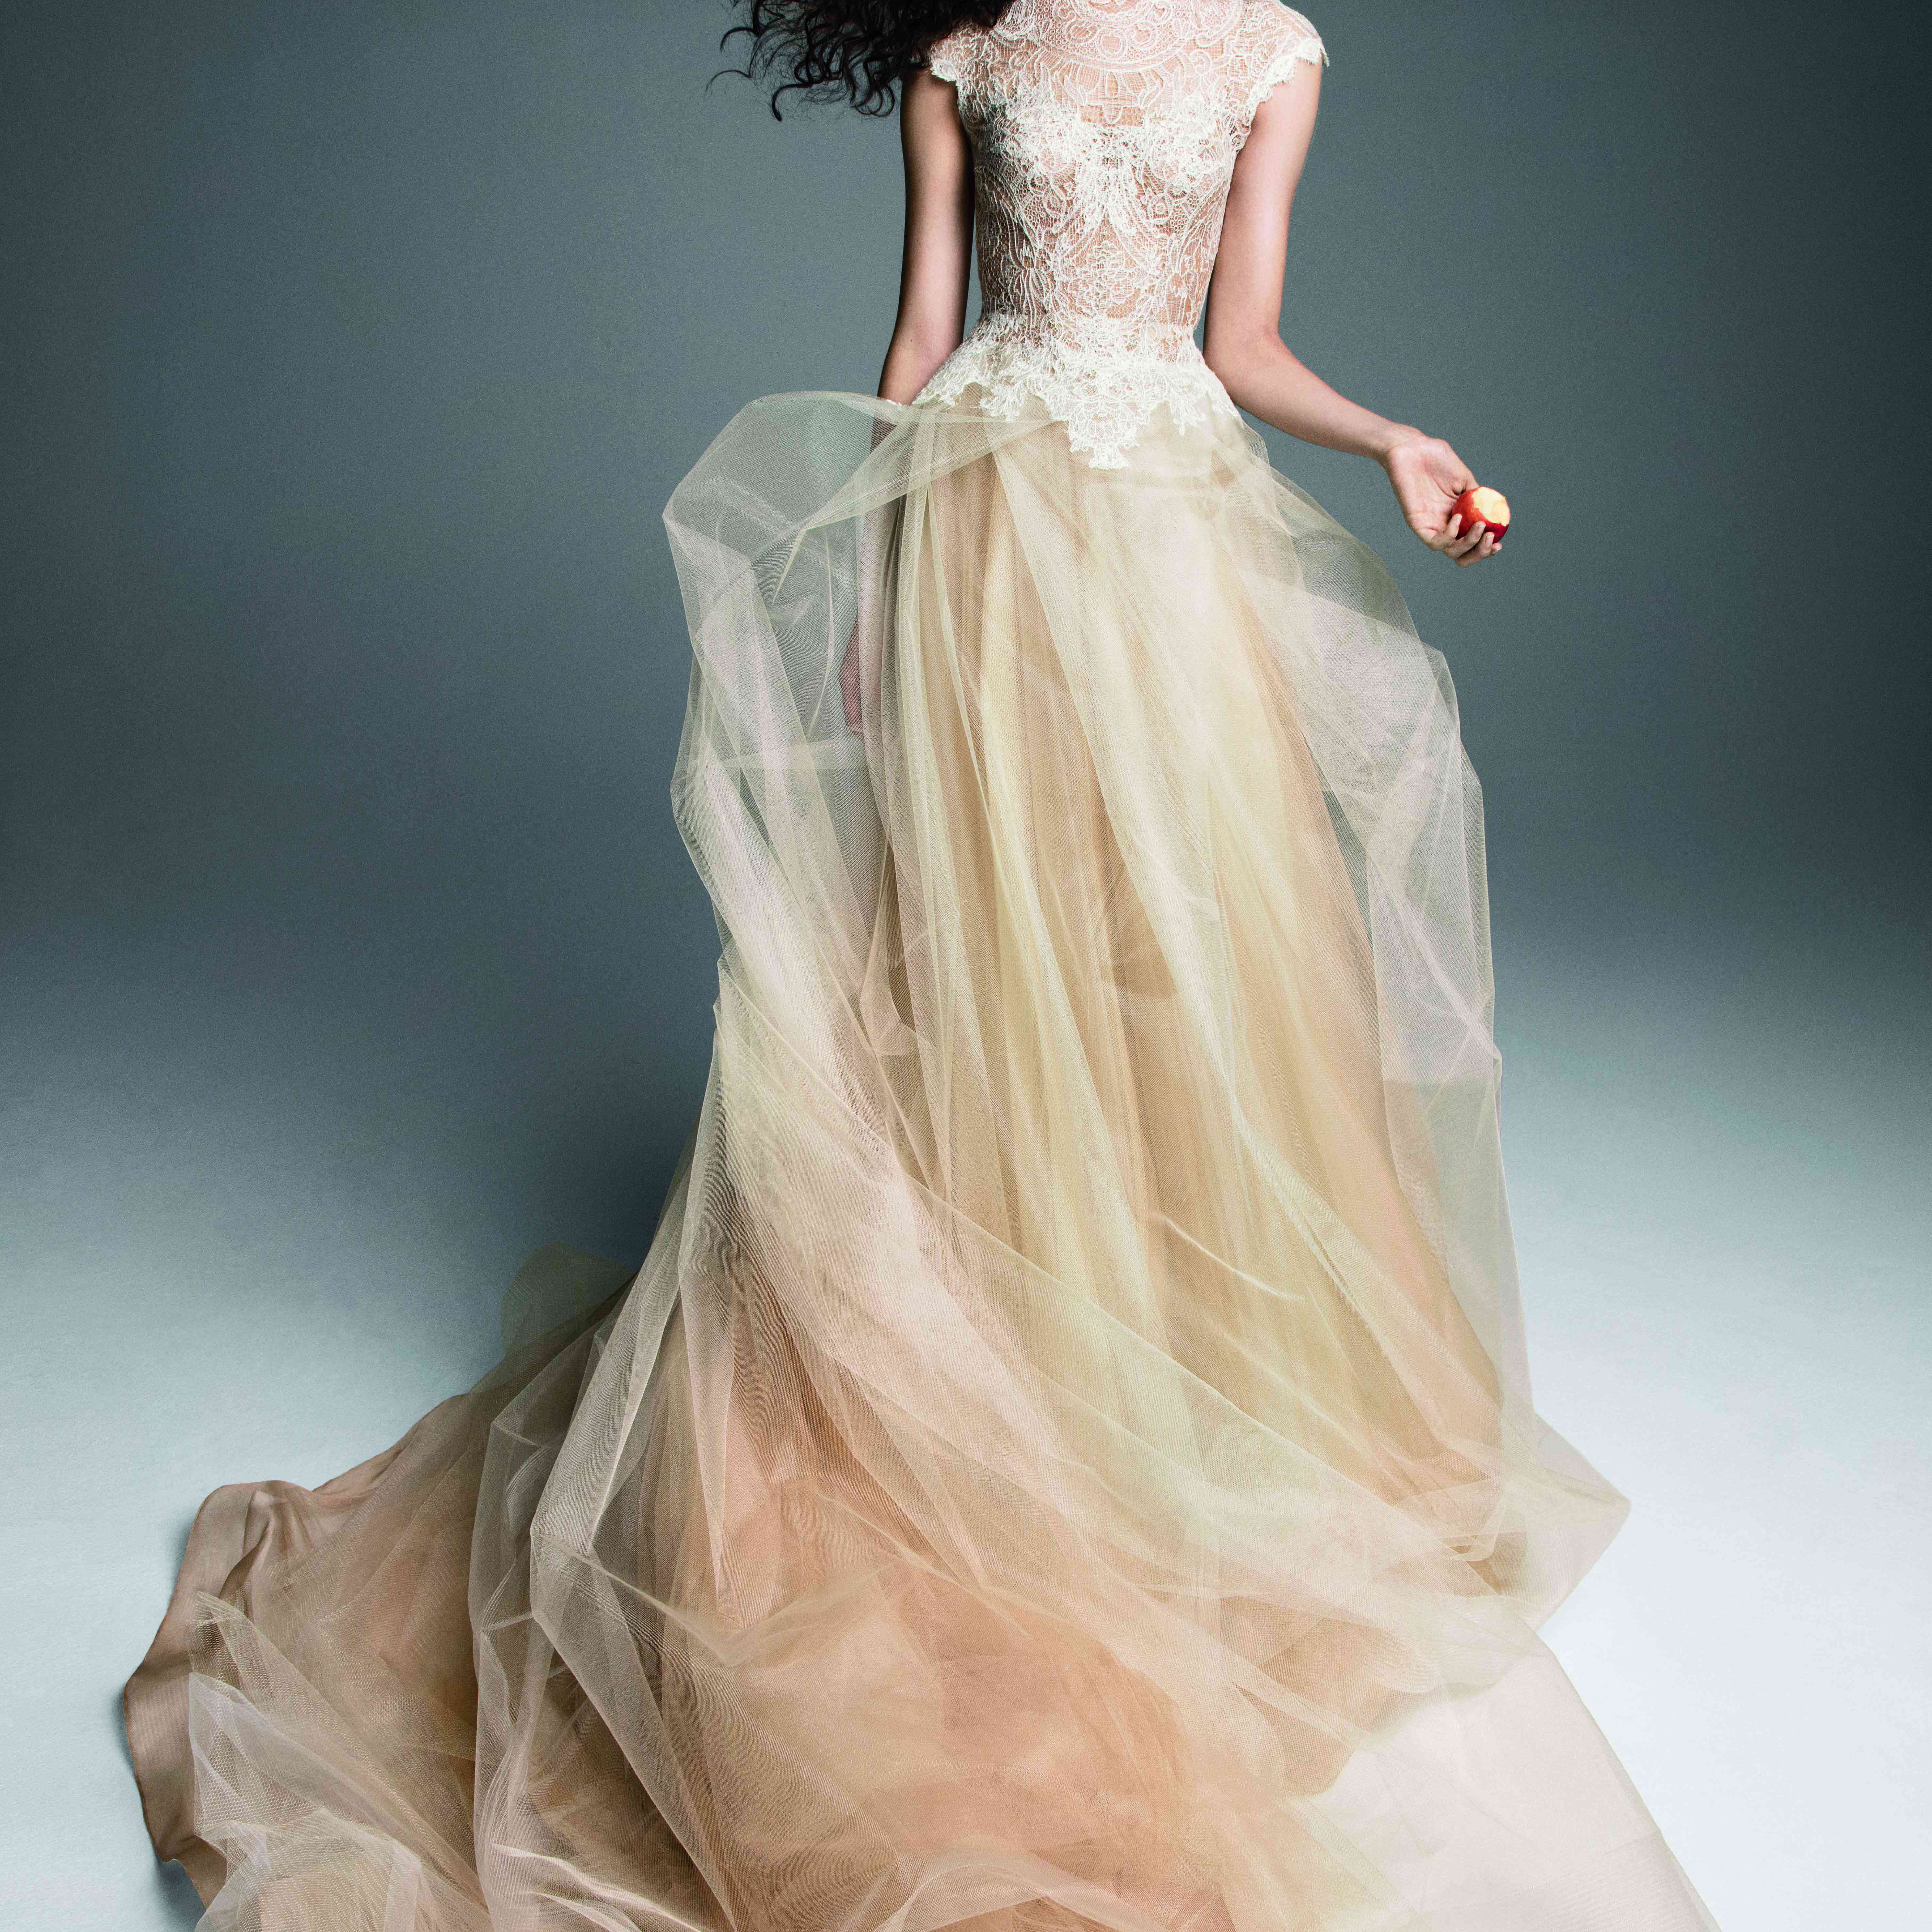 Model in nude and ivory tulle A-line gown with a lace bodice and cap sleeves